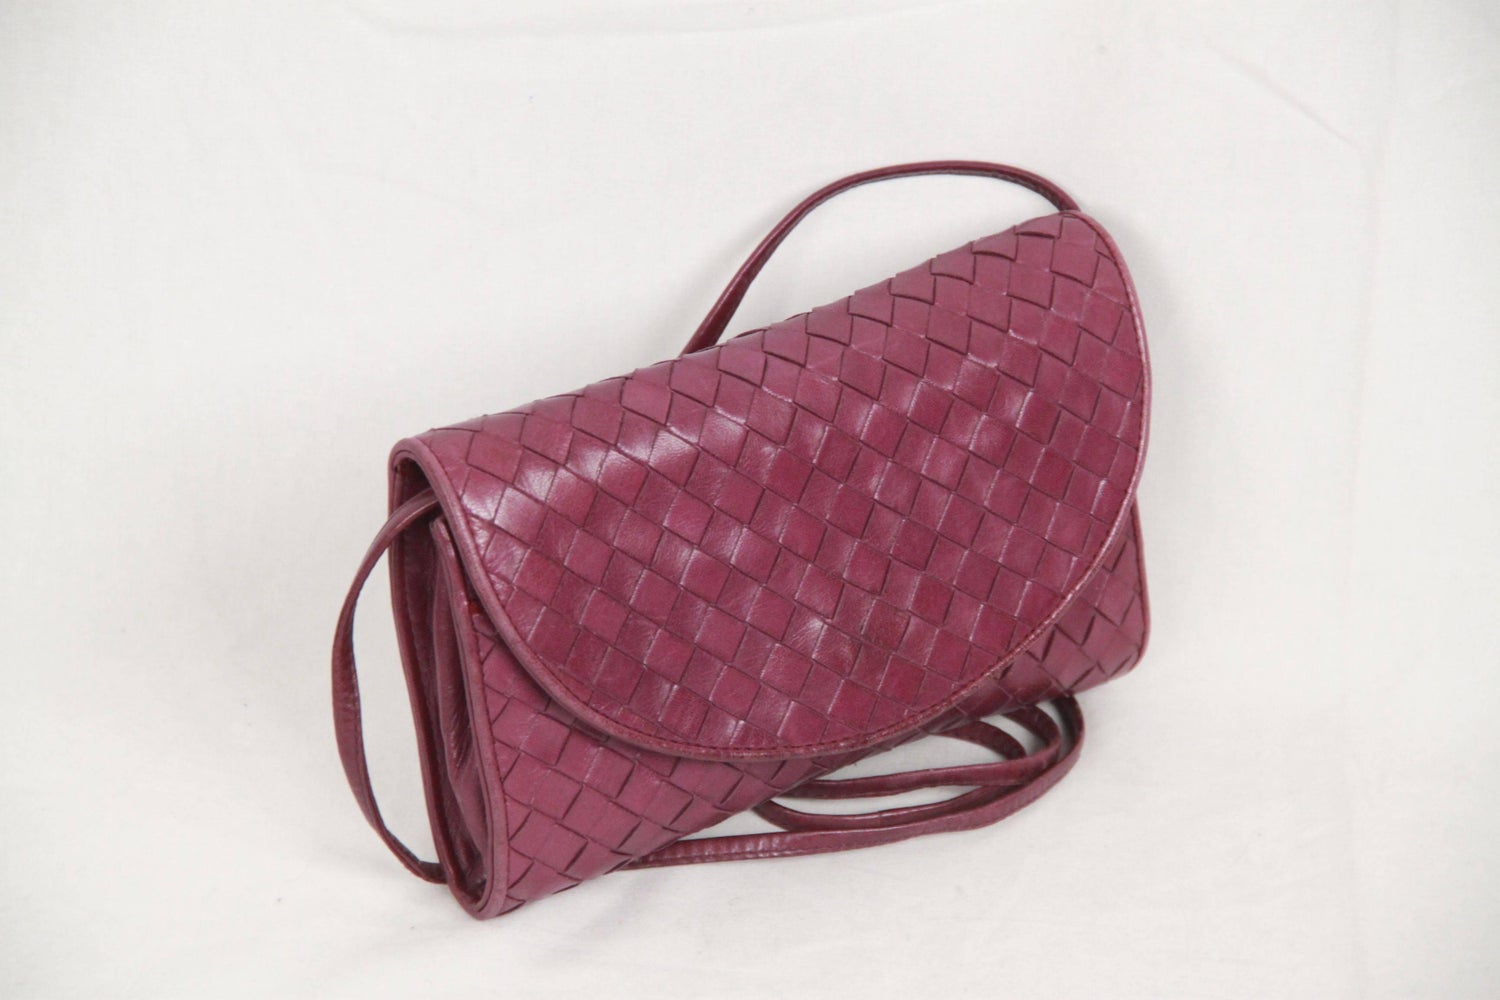 ... BOTTEGA VENETA Vintage Purple INTRECCIATO Leather SMALL MESSENGER BAG  For Sale at 1stdibs super popular c1d44 ... 182e2673a05e7